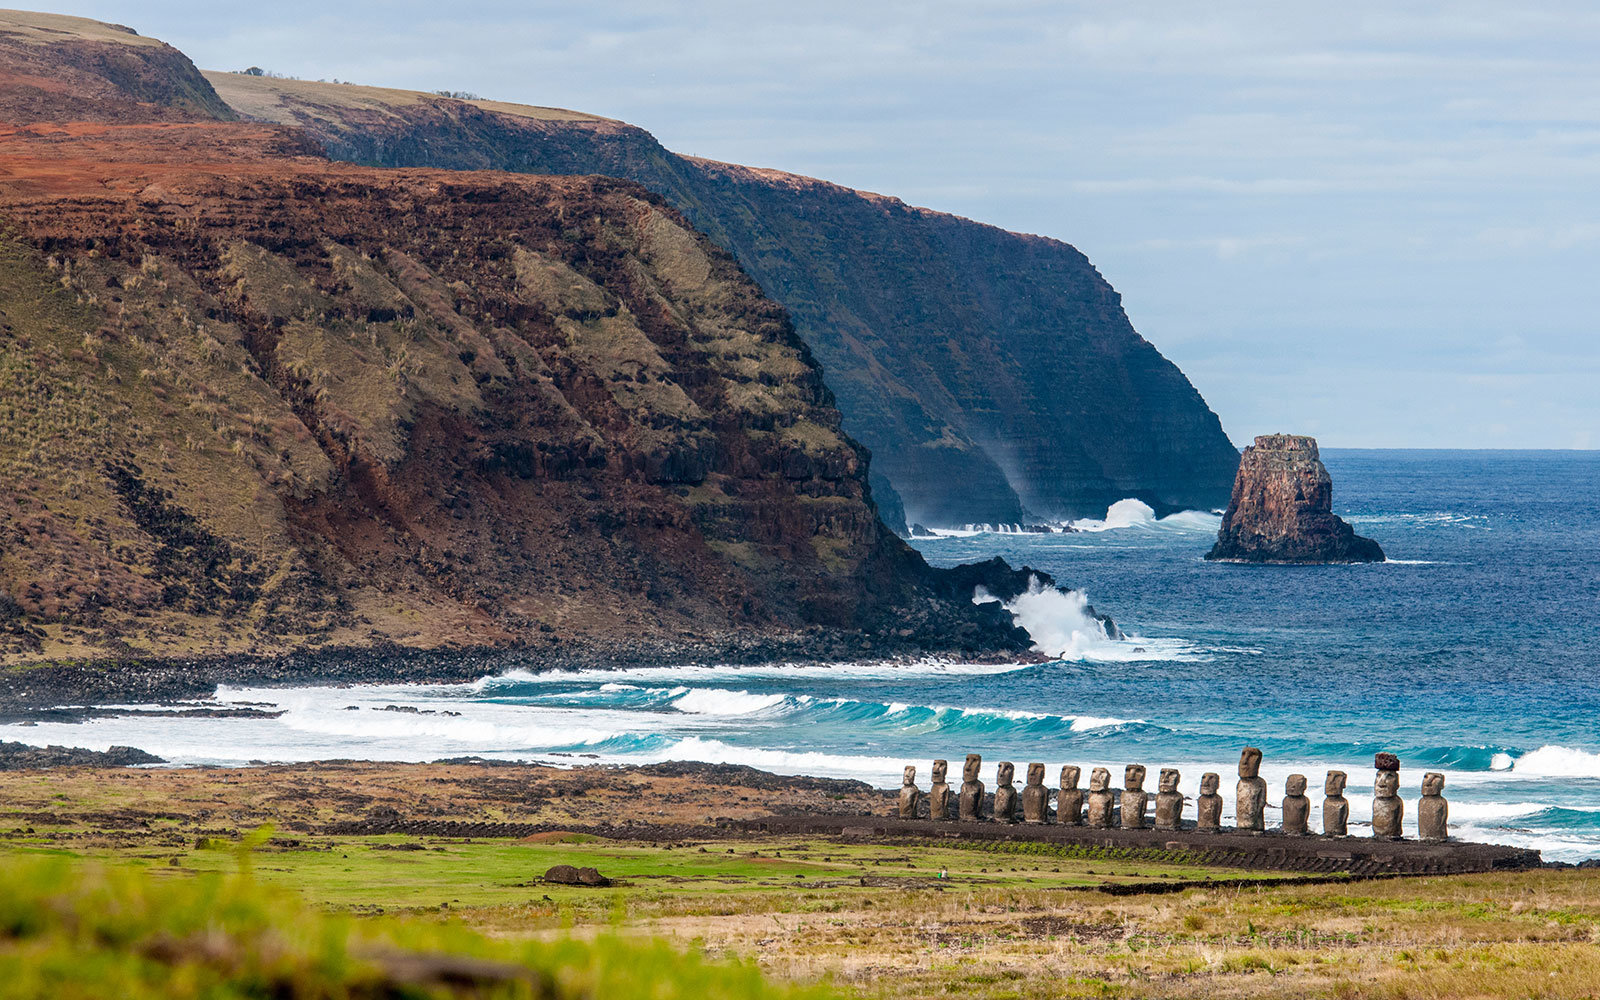 No. 3: Easter Island, Chile